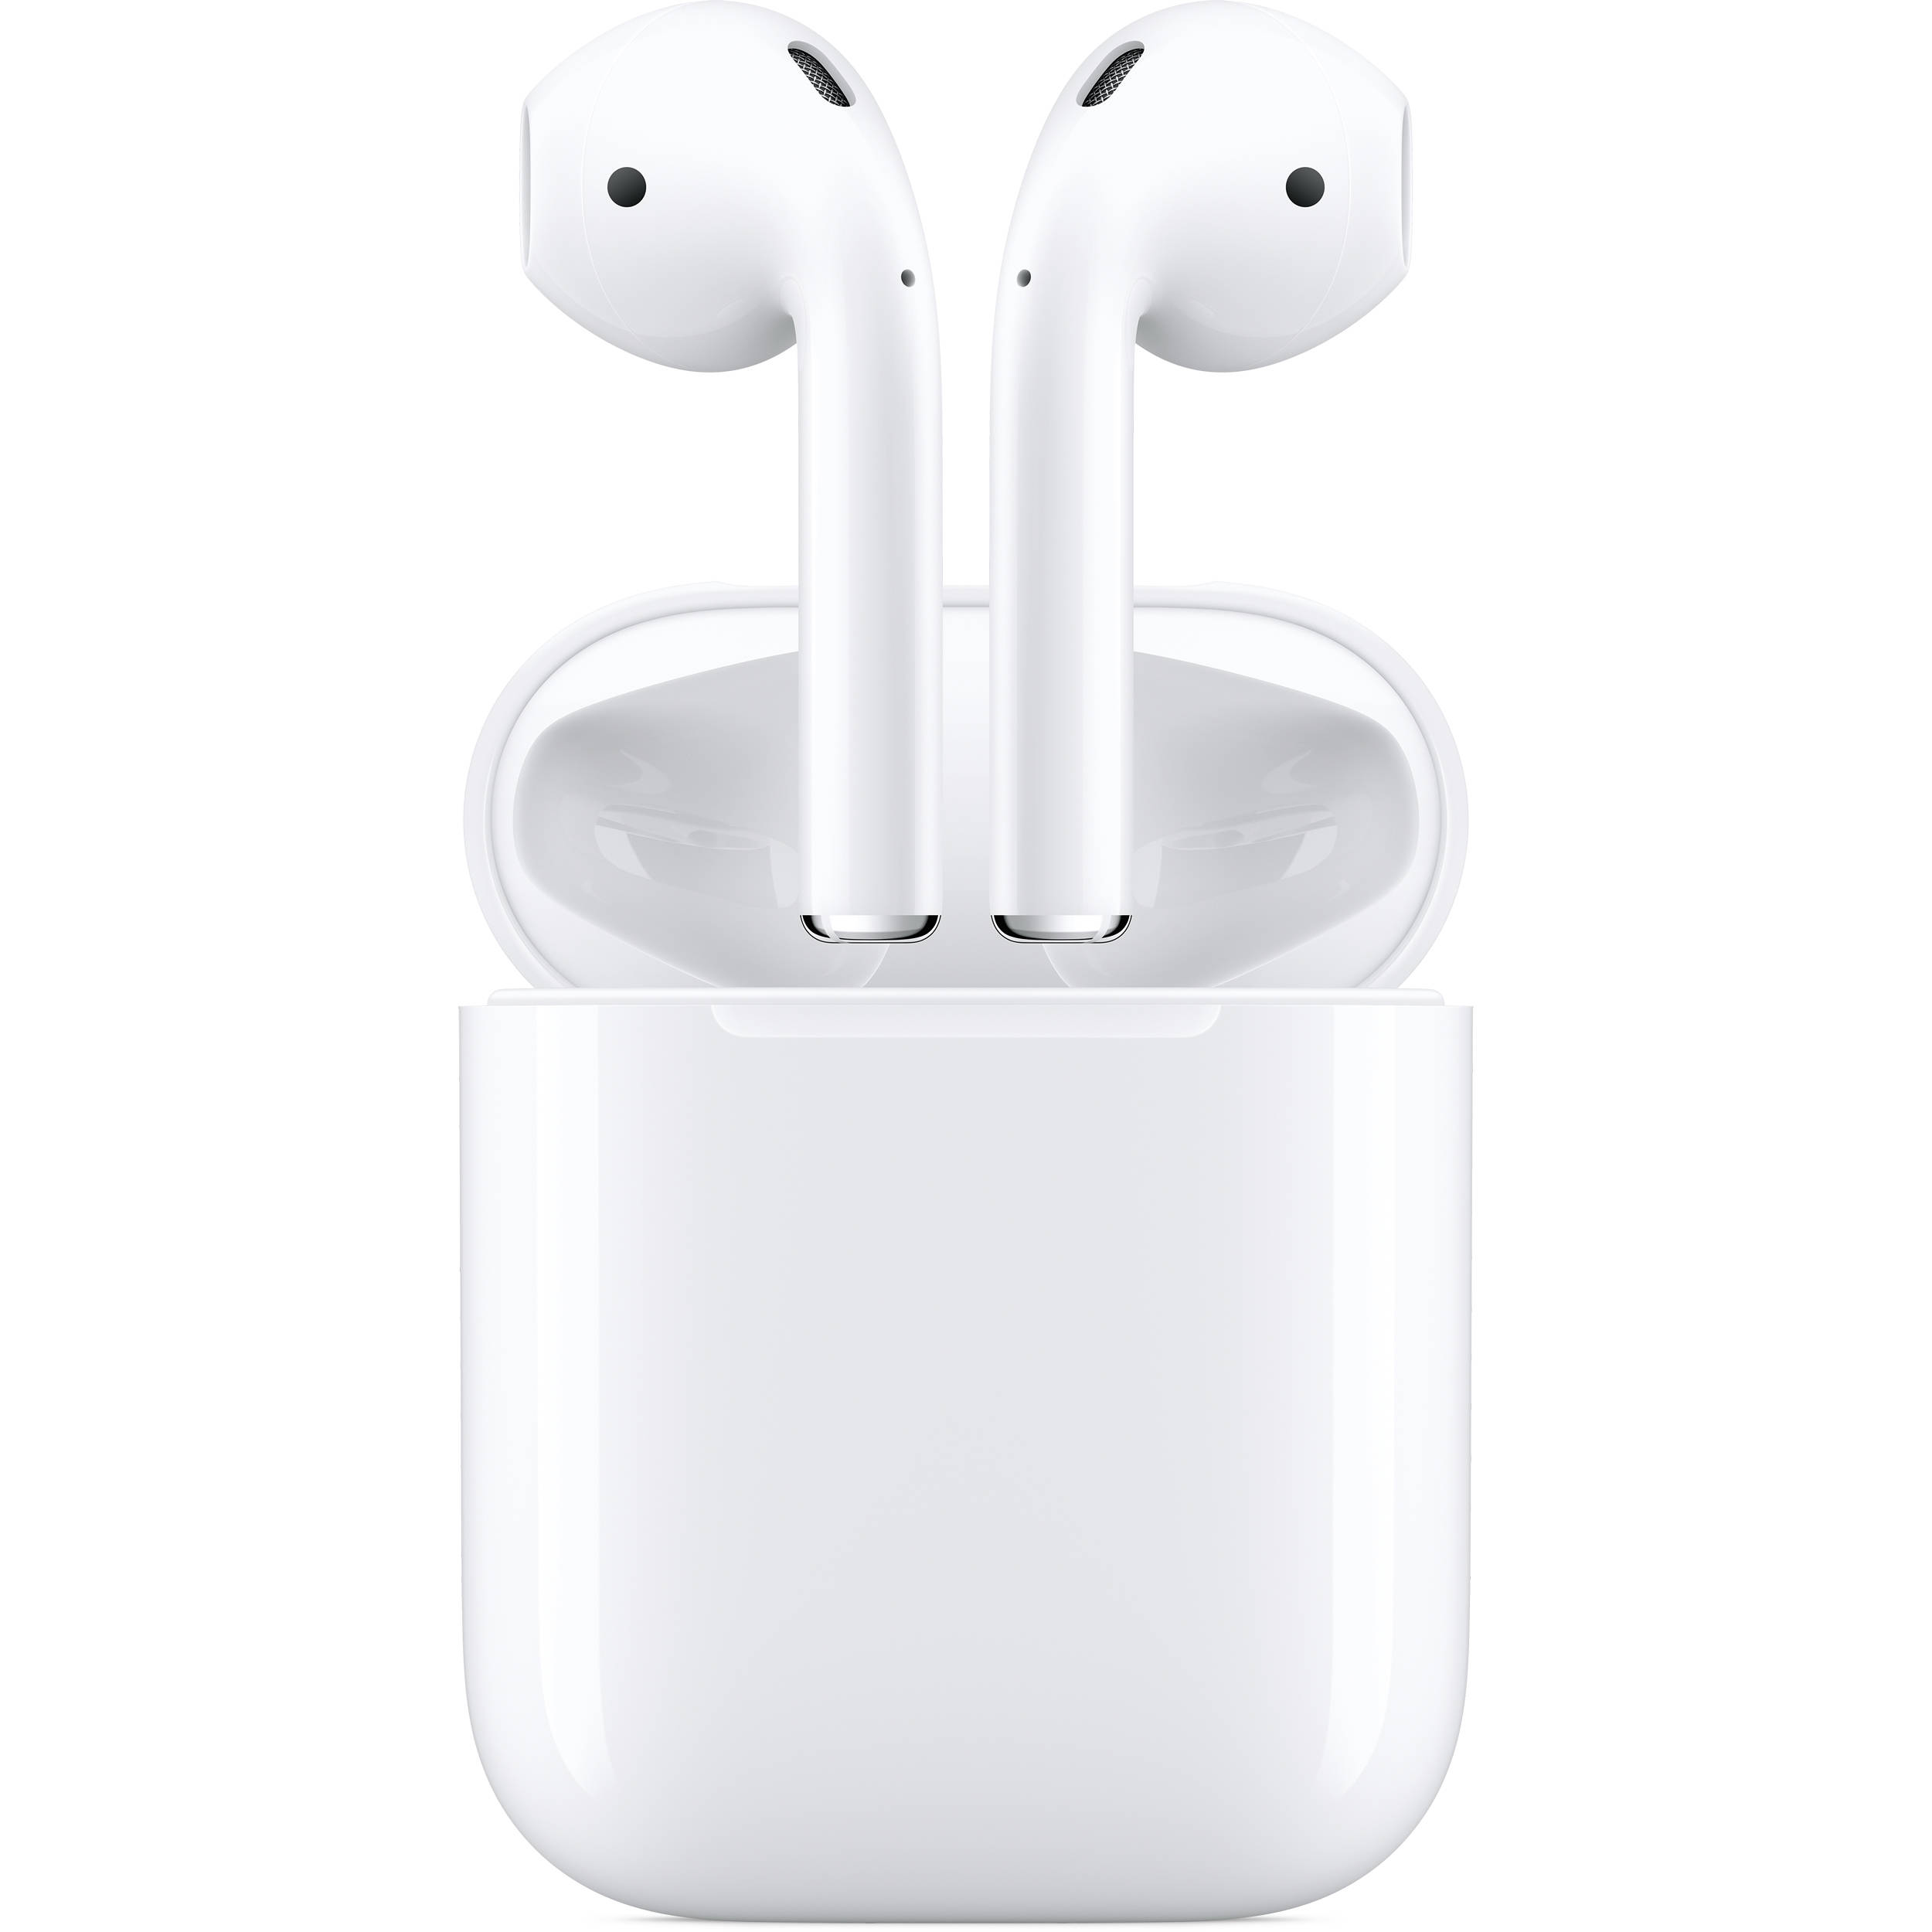 d29c2cc970b Apple AirPods with Charging Case (2nd Generation) MV7N2AM/A B&H